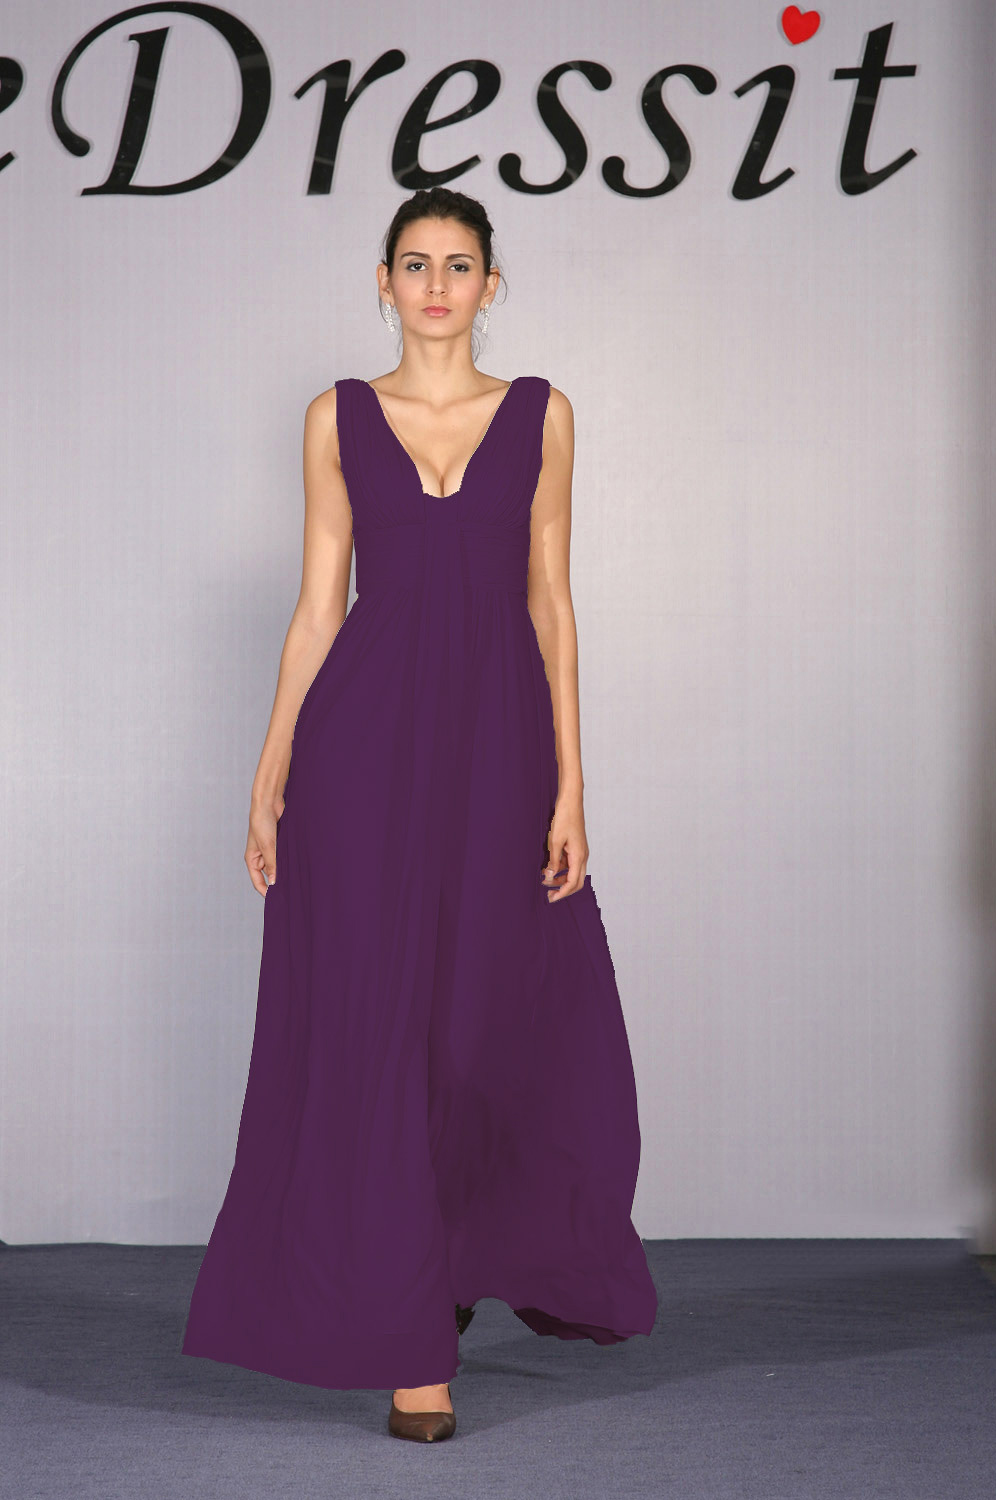 On sale evening dress (00090907h)